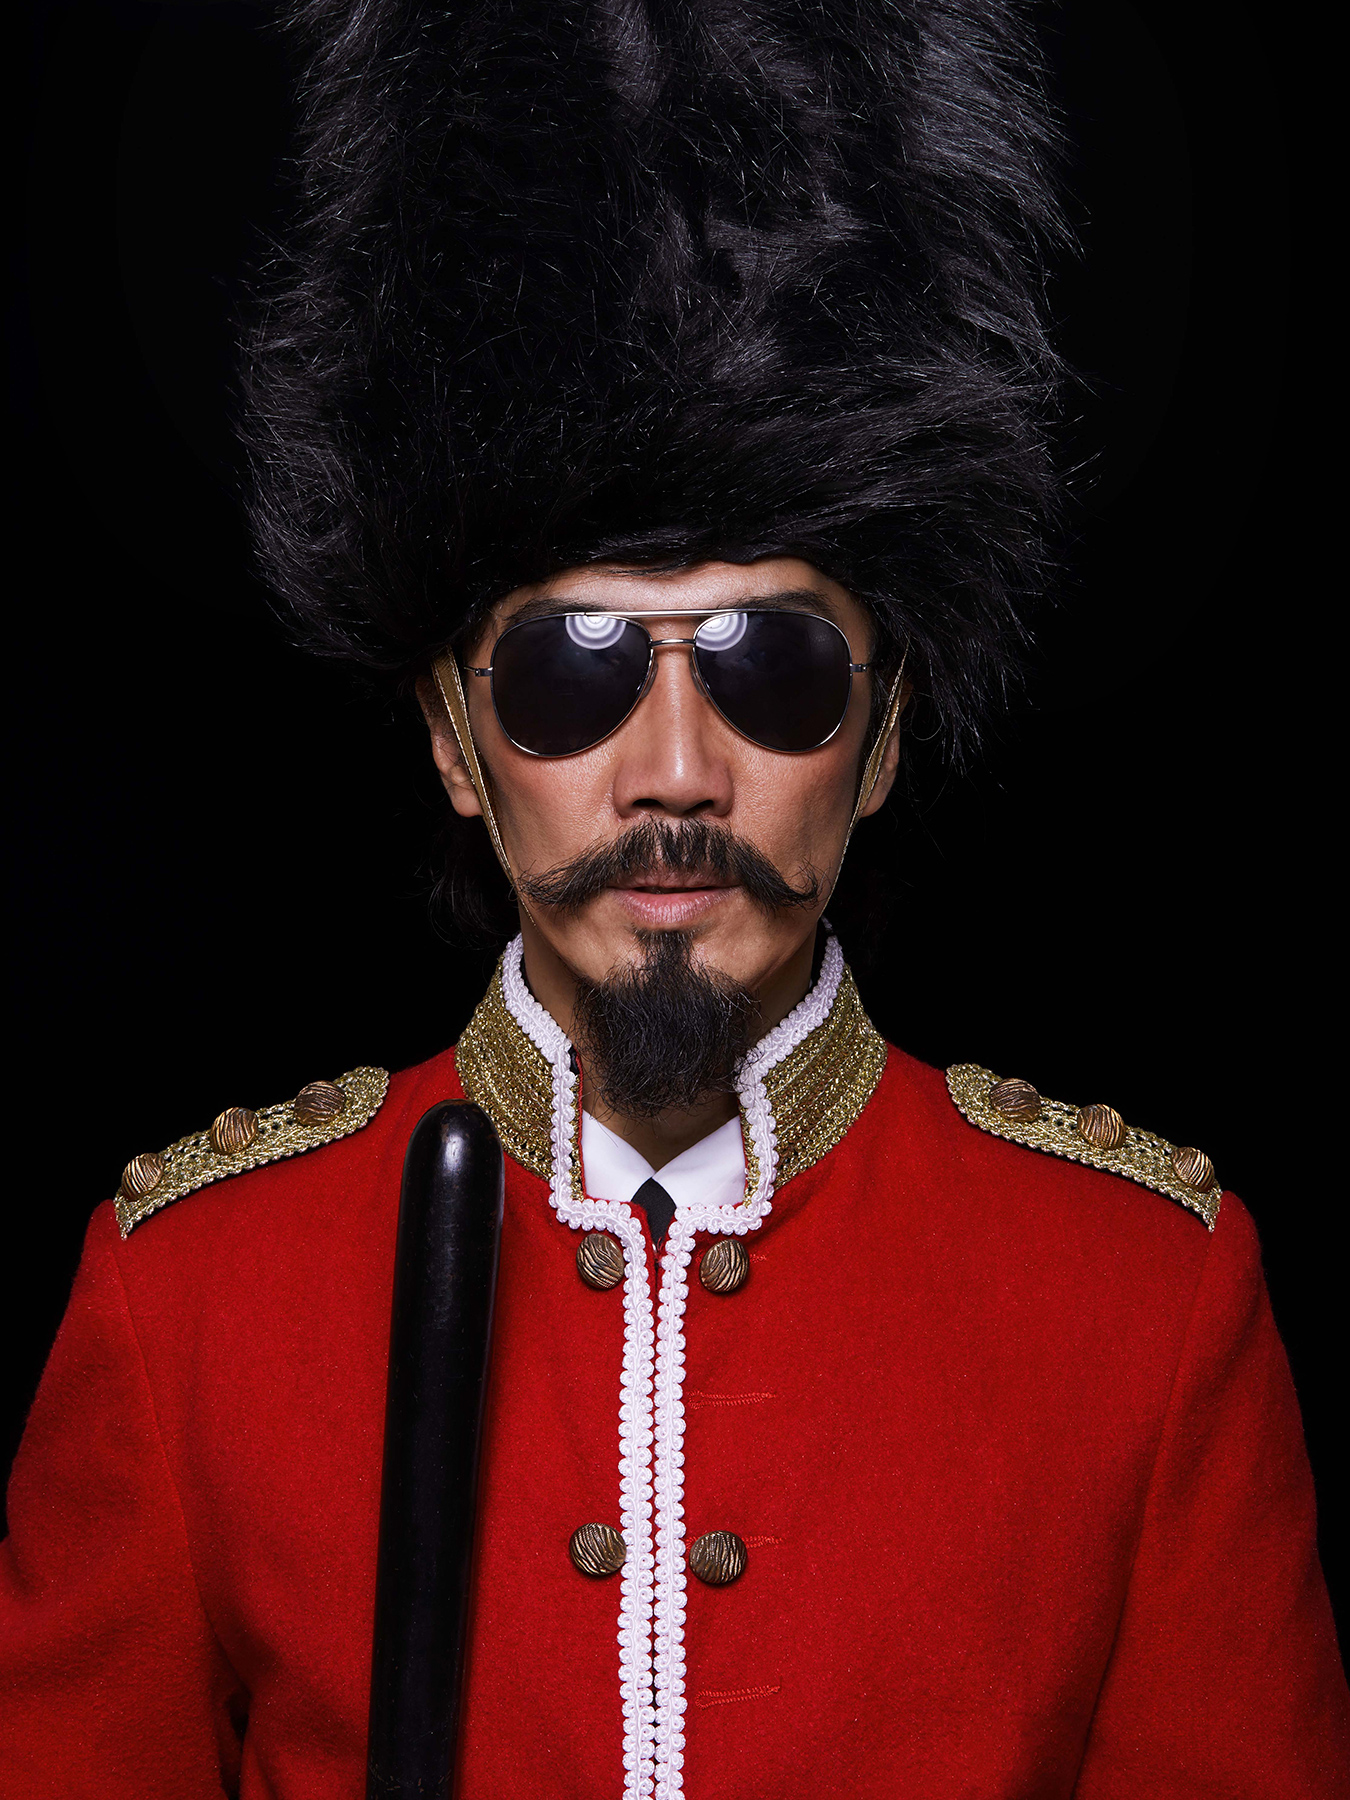 4 Dec 2017 Derong is photographed in a Queen's Guard costume